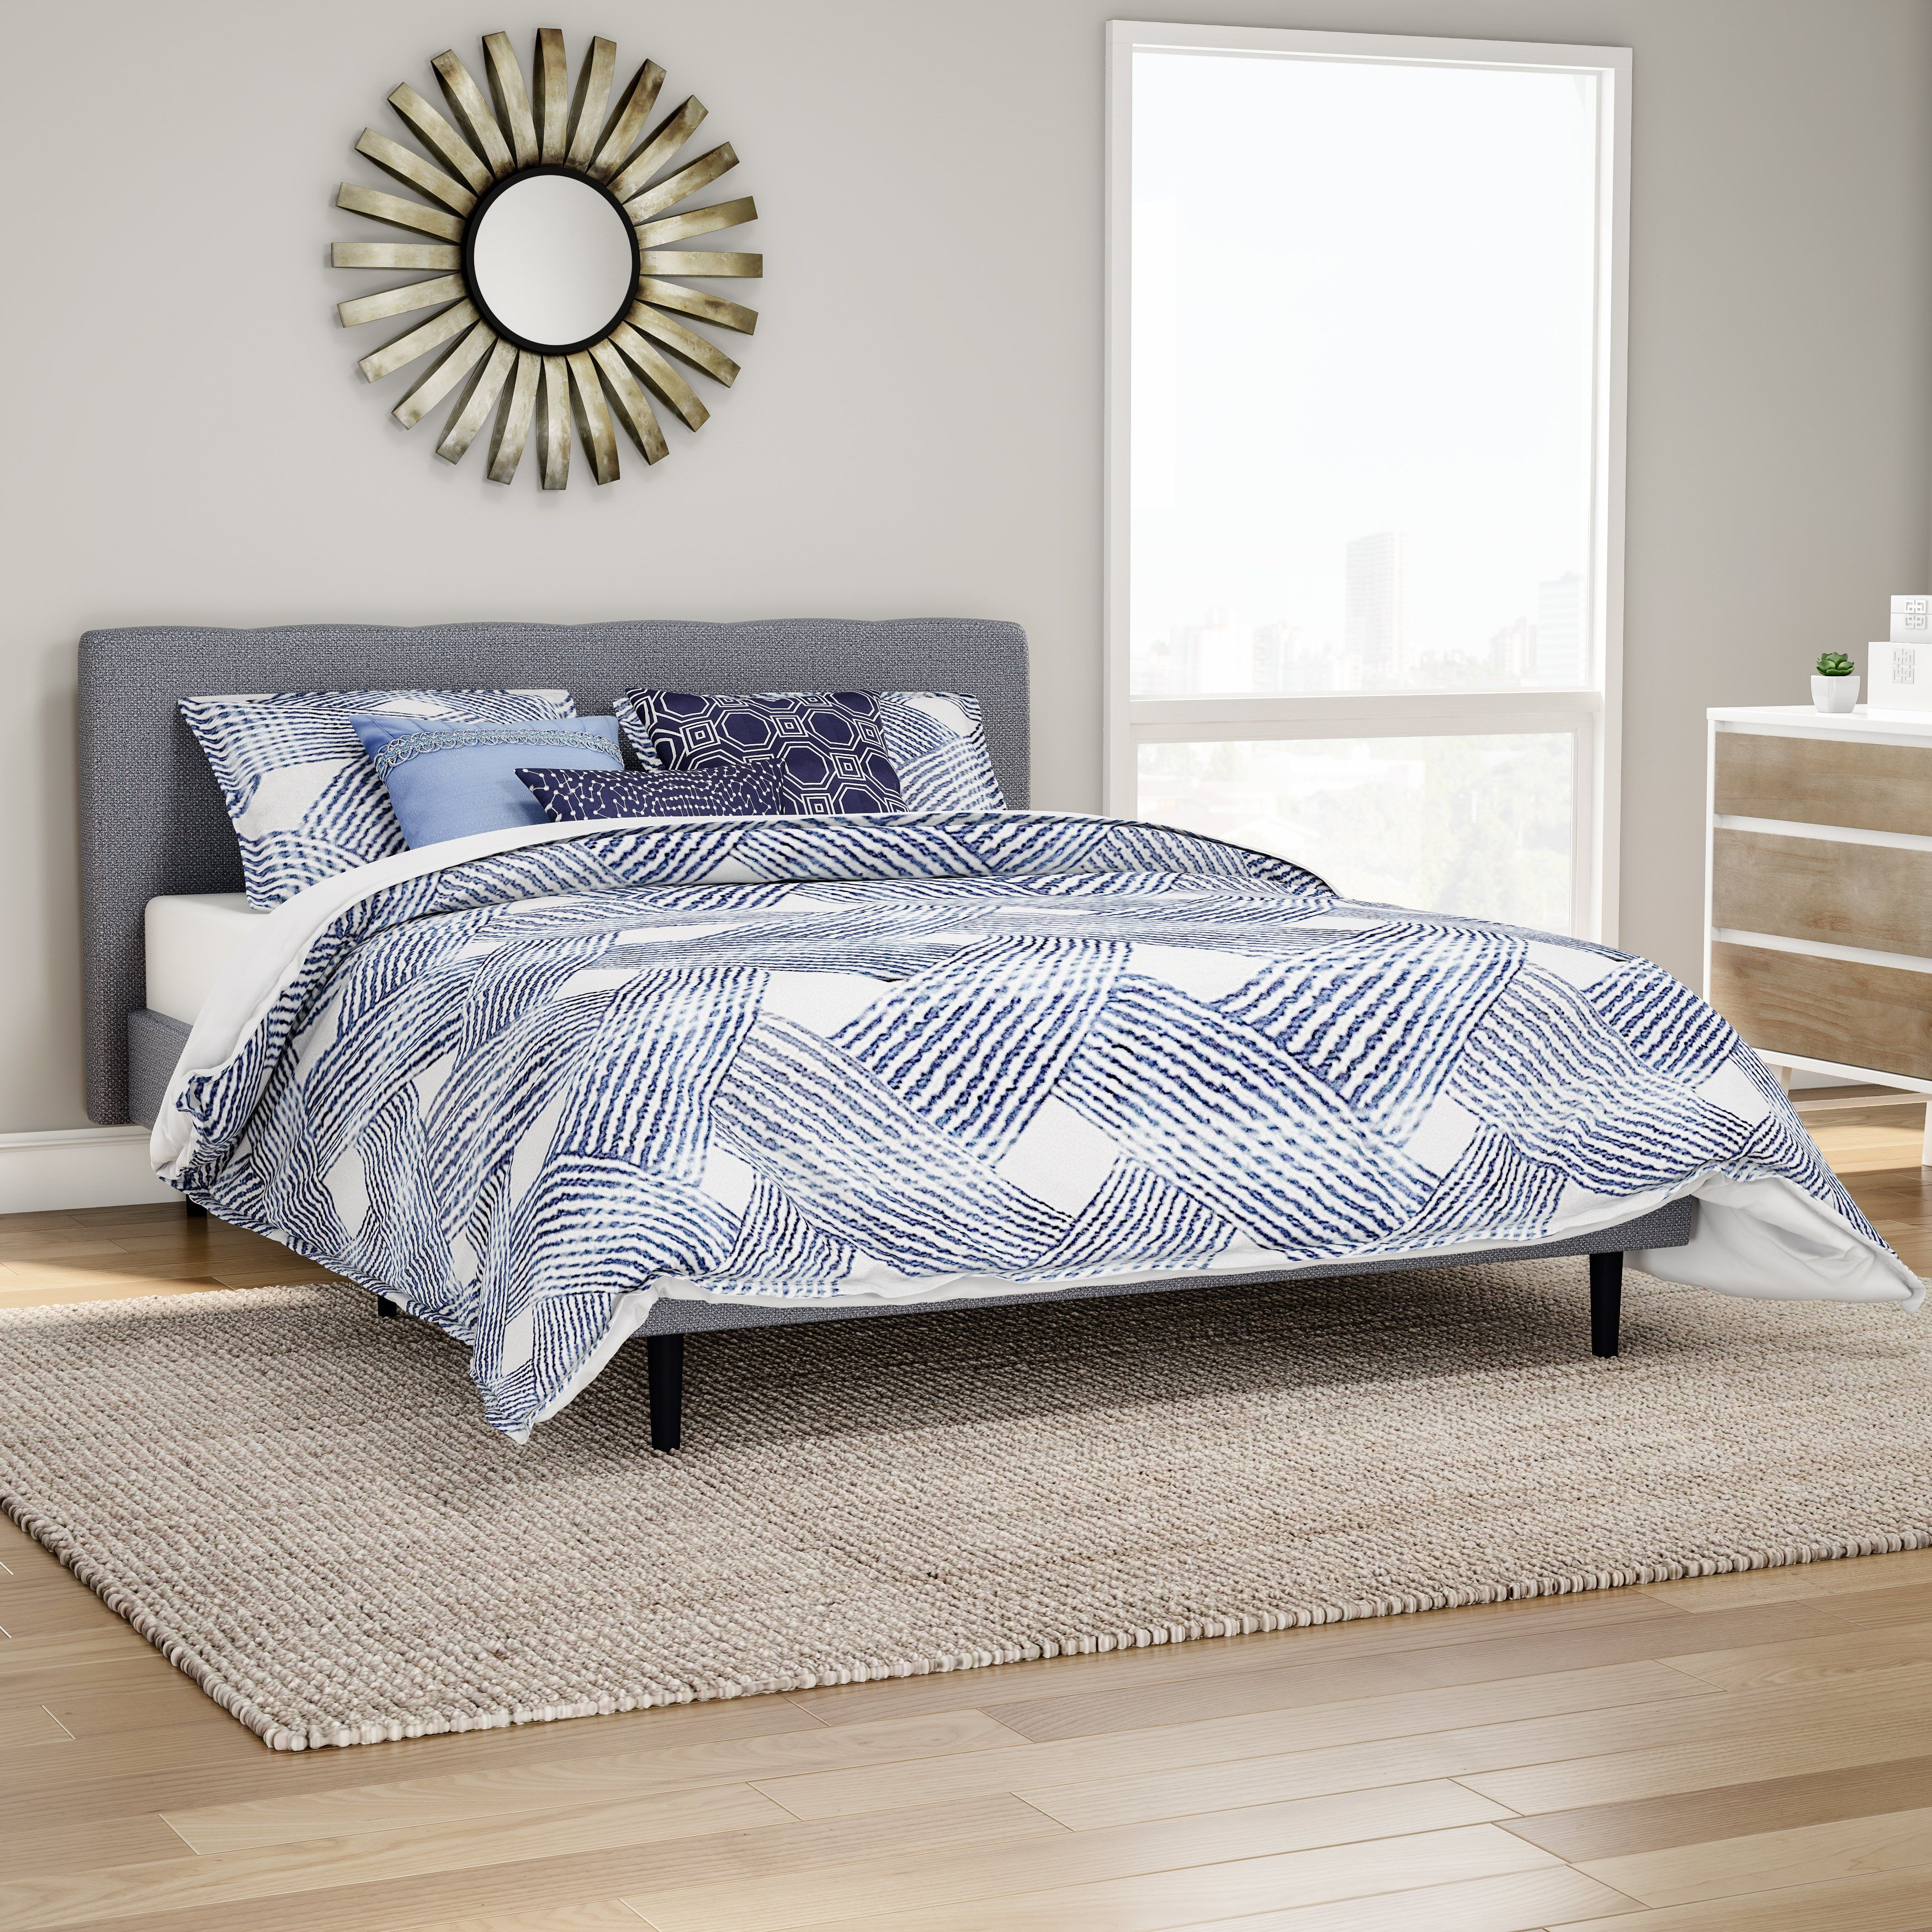 Online Shopping Bedding Furniture Electronics Jewelry Clothing More Bedroom Comforter Sets Most Comfortable Sheets Comforter Sets